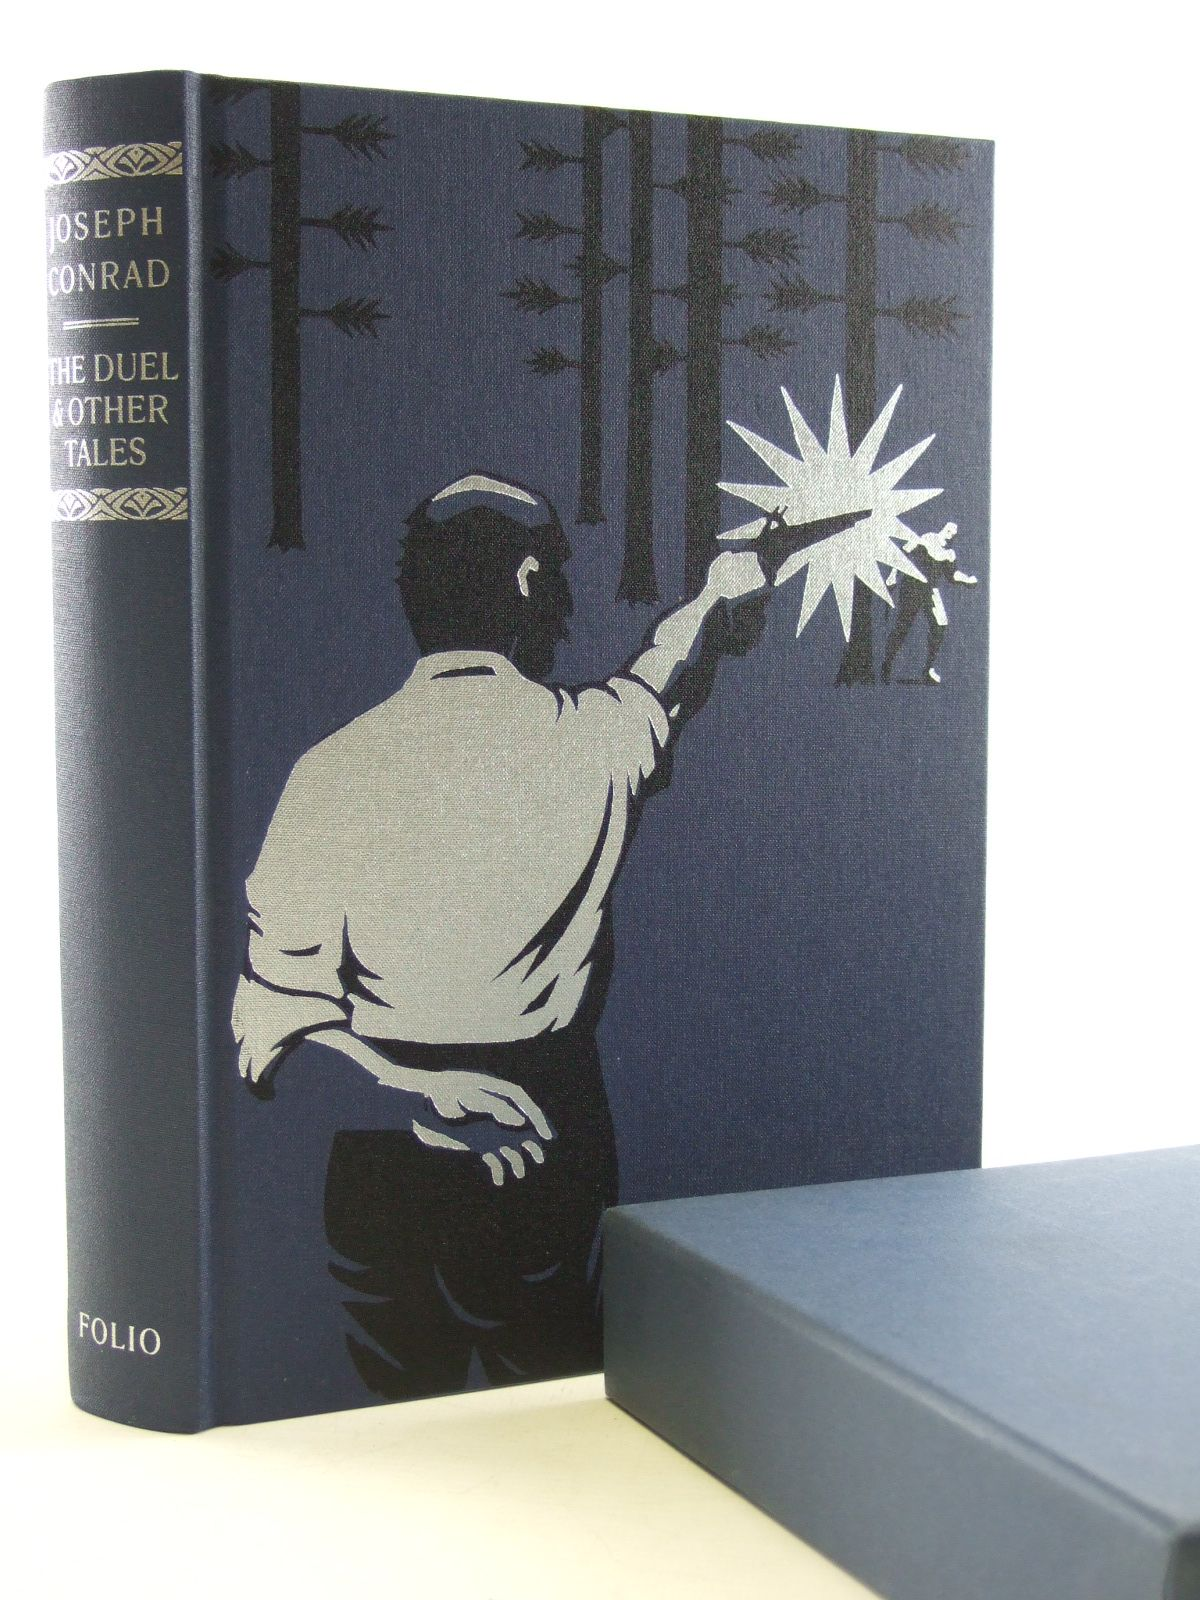 Photo of THE DUEL AND OTHER TALES written by Conrad, Joseph published by Folio Society (STOCK CODE: 1603649)  for sale by Stella & Rose's Books